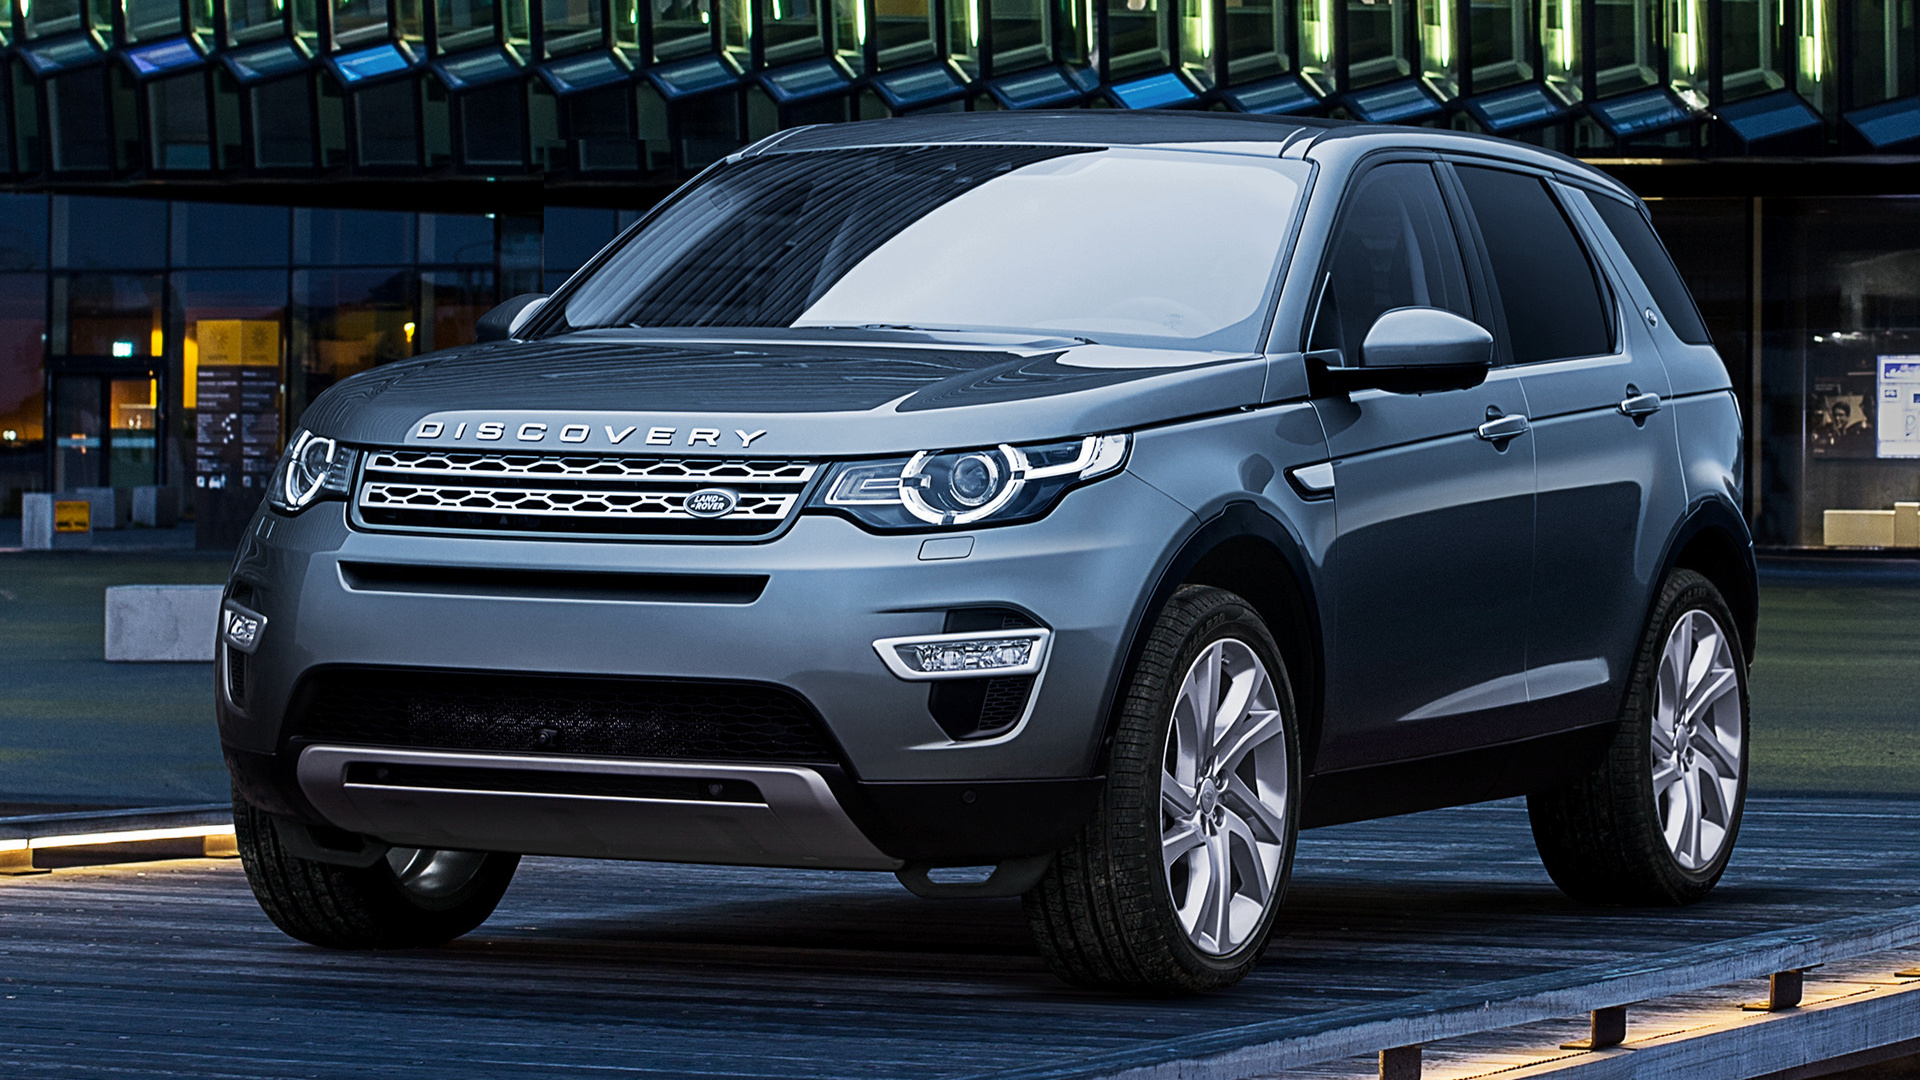 land rover discovery sport hse luxury 2015 wallpapers and hd images car pixel. Black Bedroom Furniture Sets. Home Design Ideas